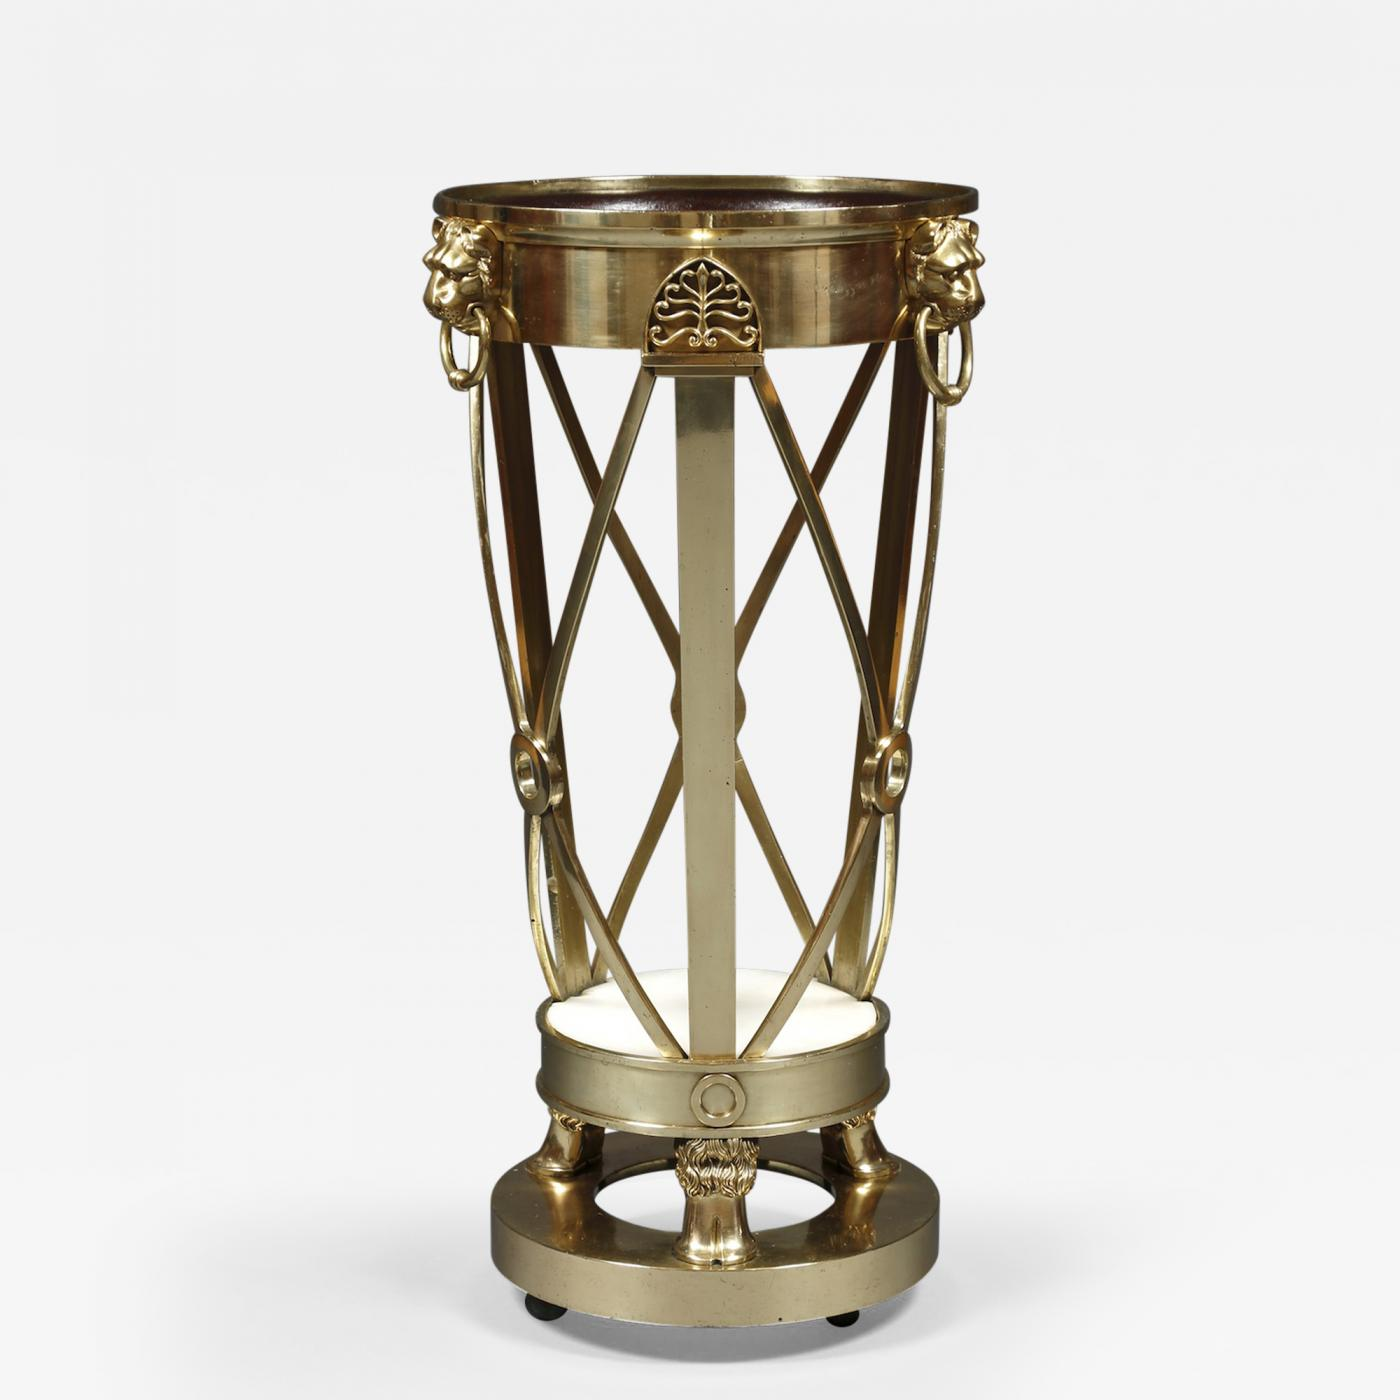 A Regency Gilt Brass Jardiniere Stand Closely Based On A Design By